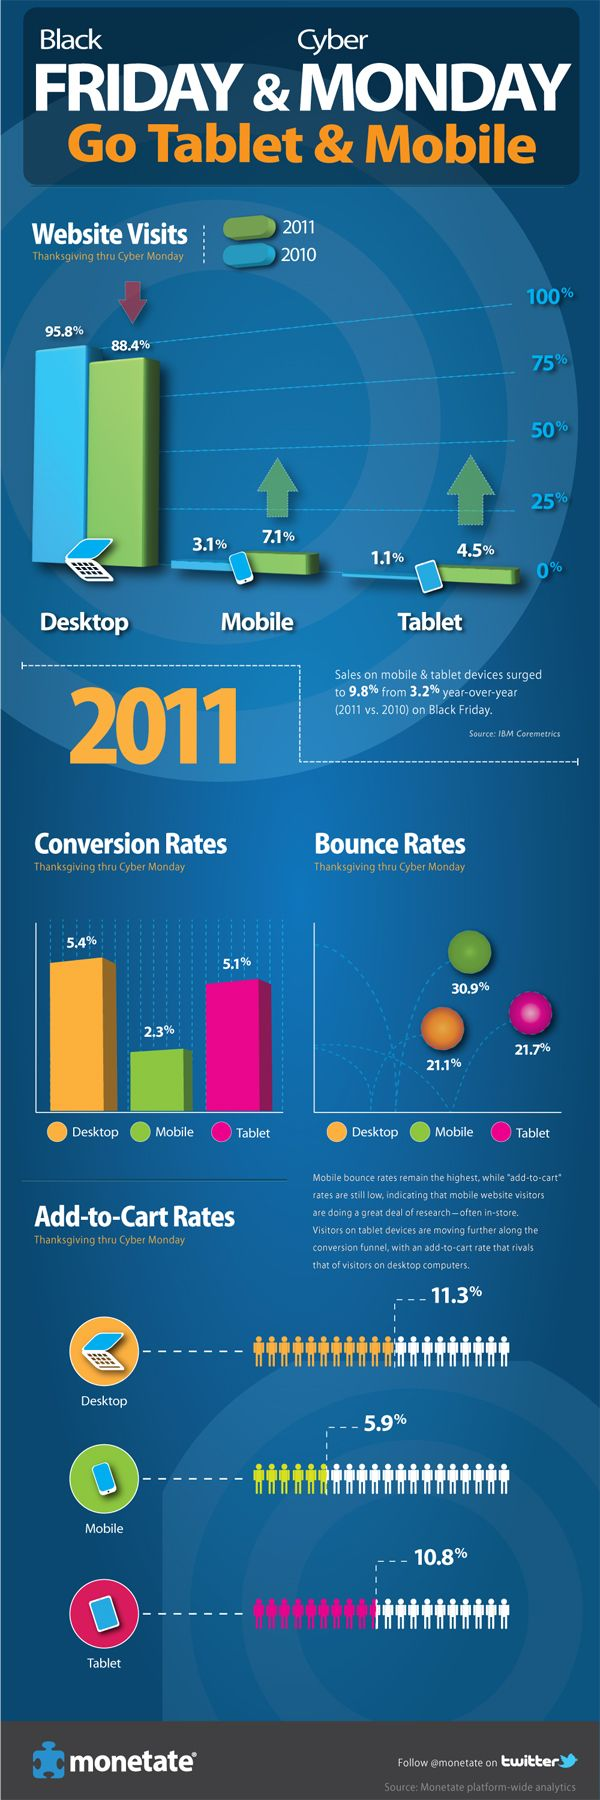 Black Friday & Cyber Monday 2011 Go Tablet & Mobile - This may be old news, but it tells us something about the future.